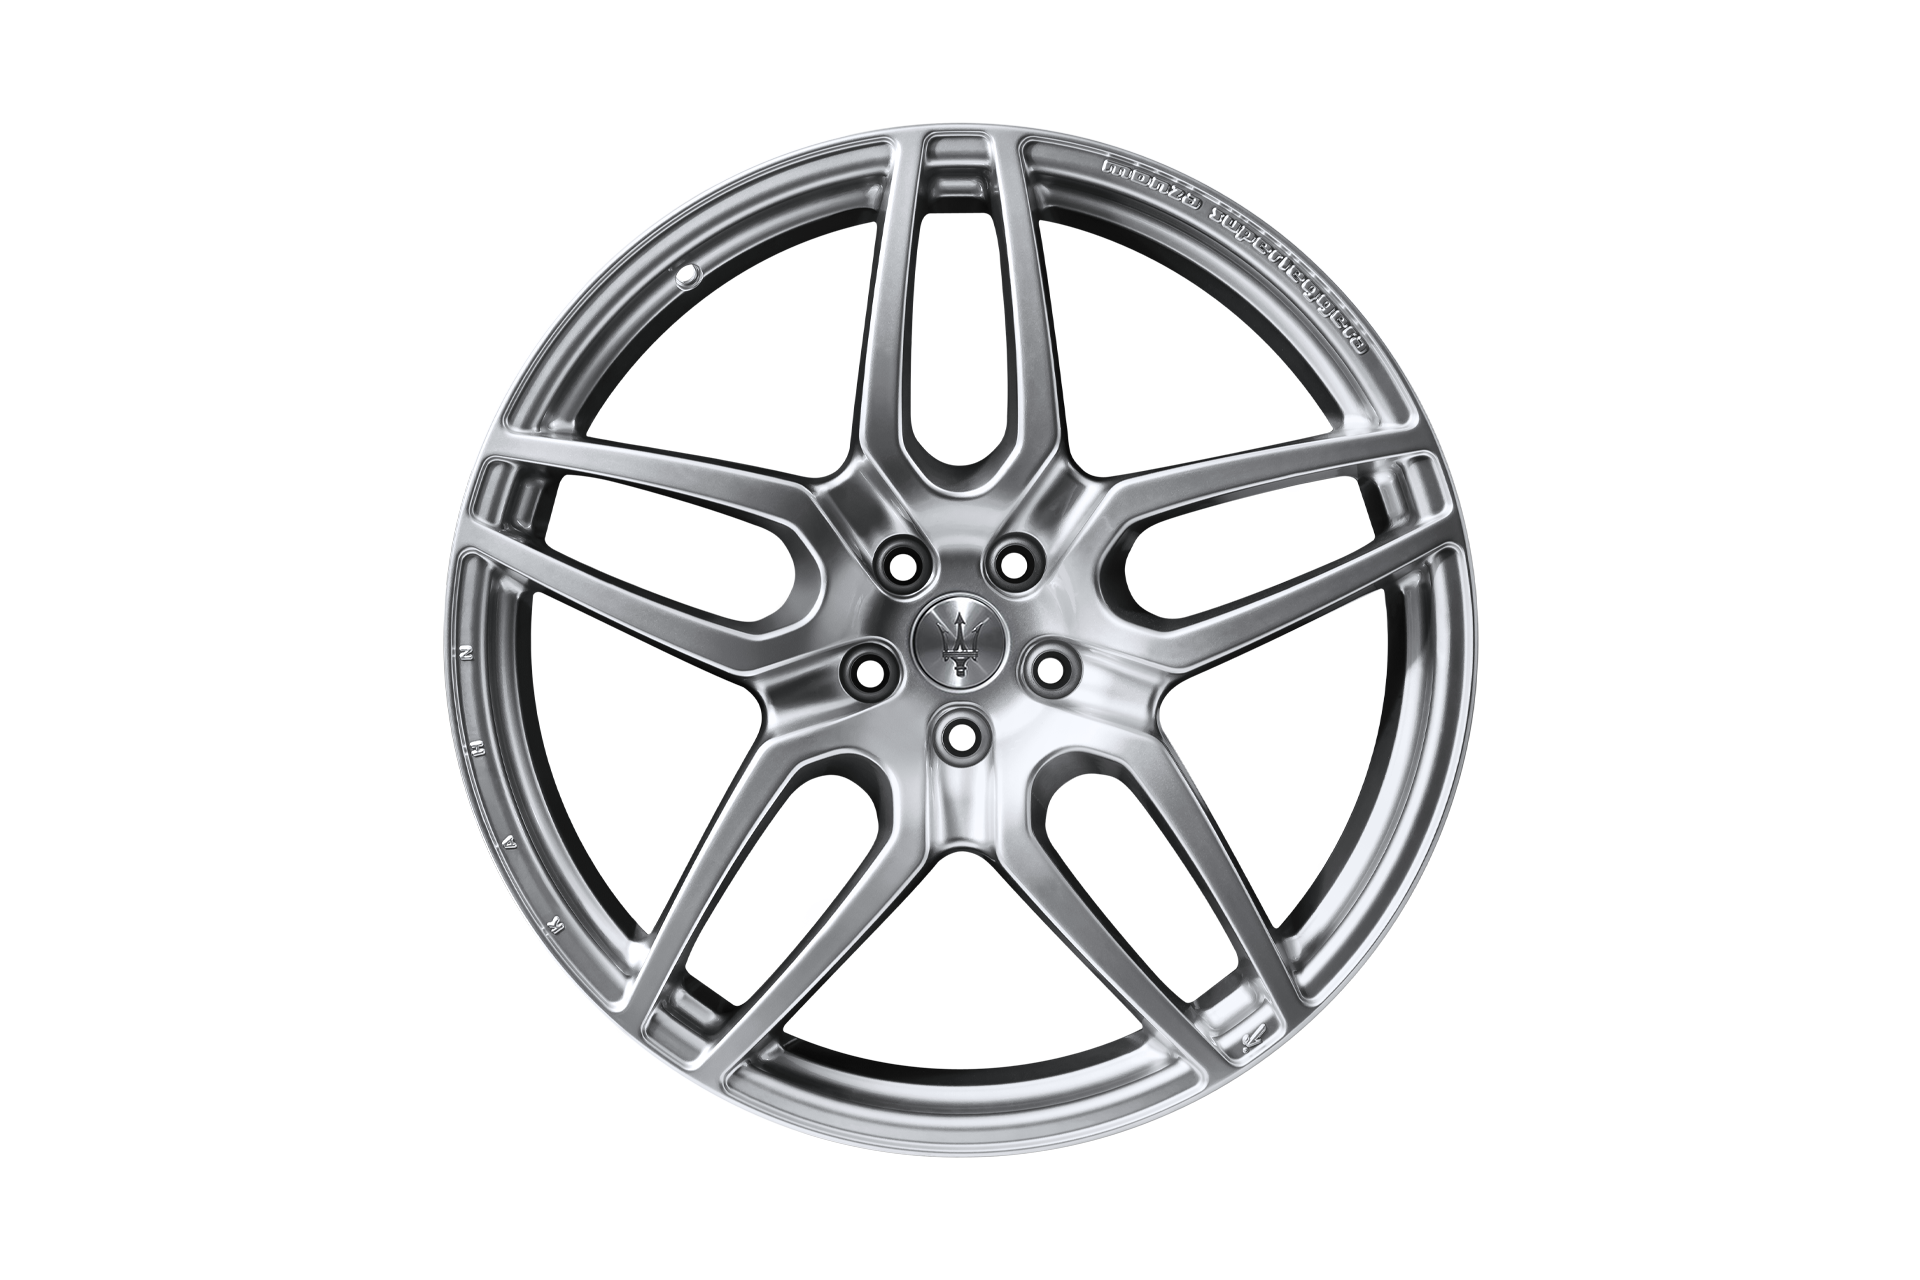 Maserati Quattroporte (2013-Present) Monza Super Leggera Light Alloy Wheels by Kahn - Image 3938